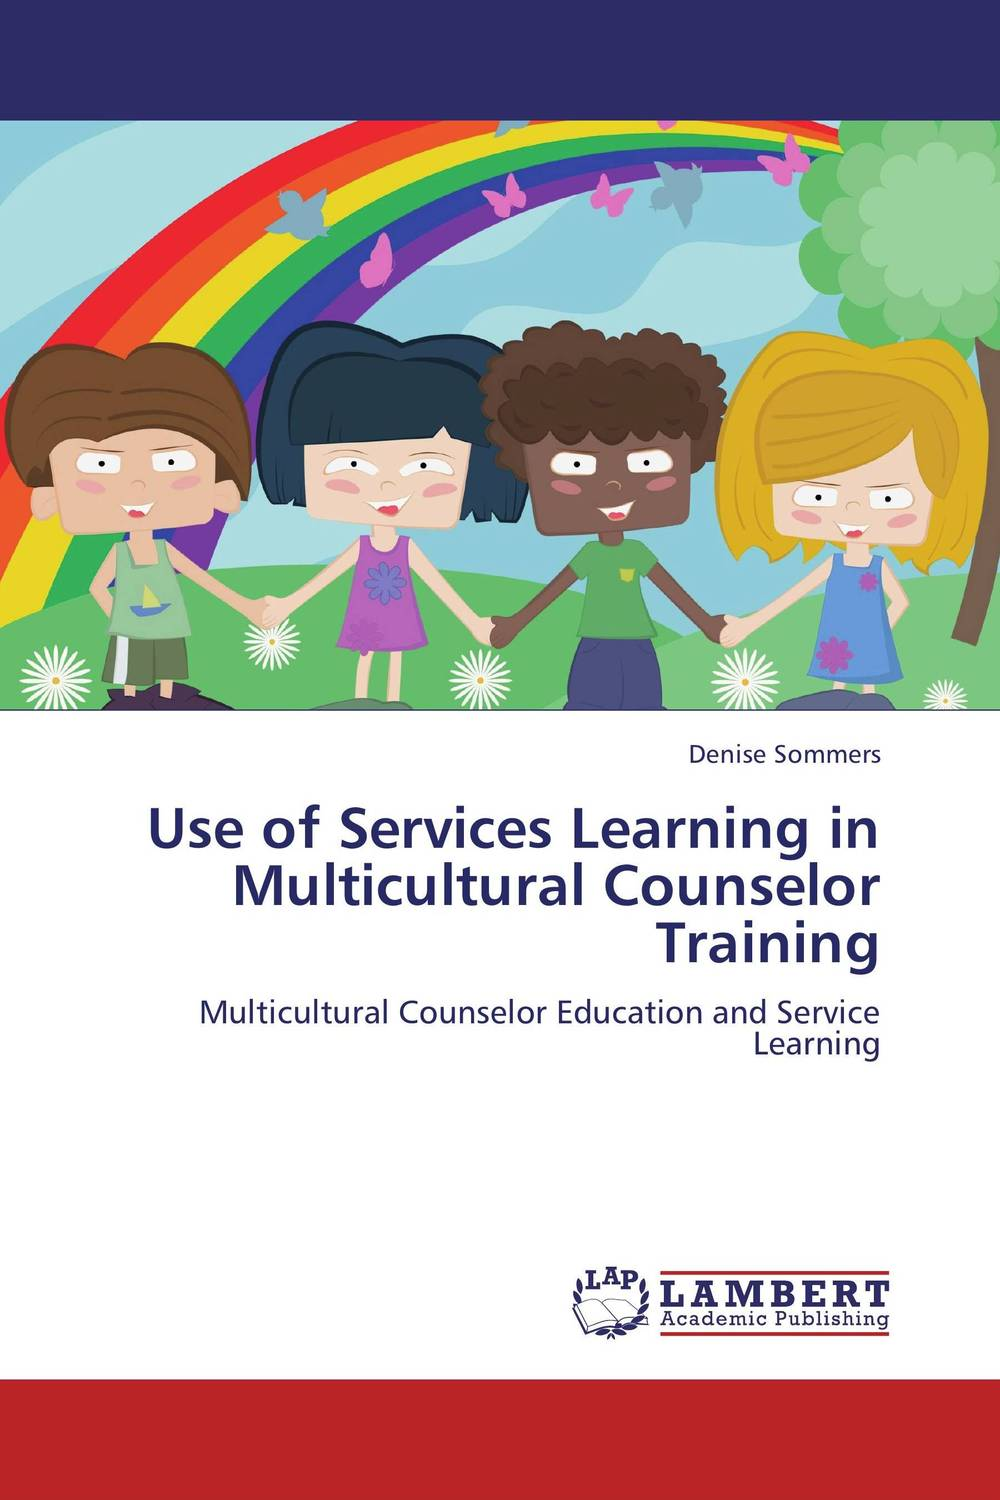 Use of Services Learning in Multicultural Counselor Training found in brooklyn